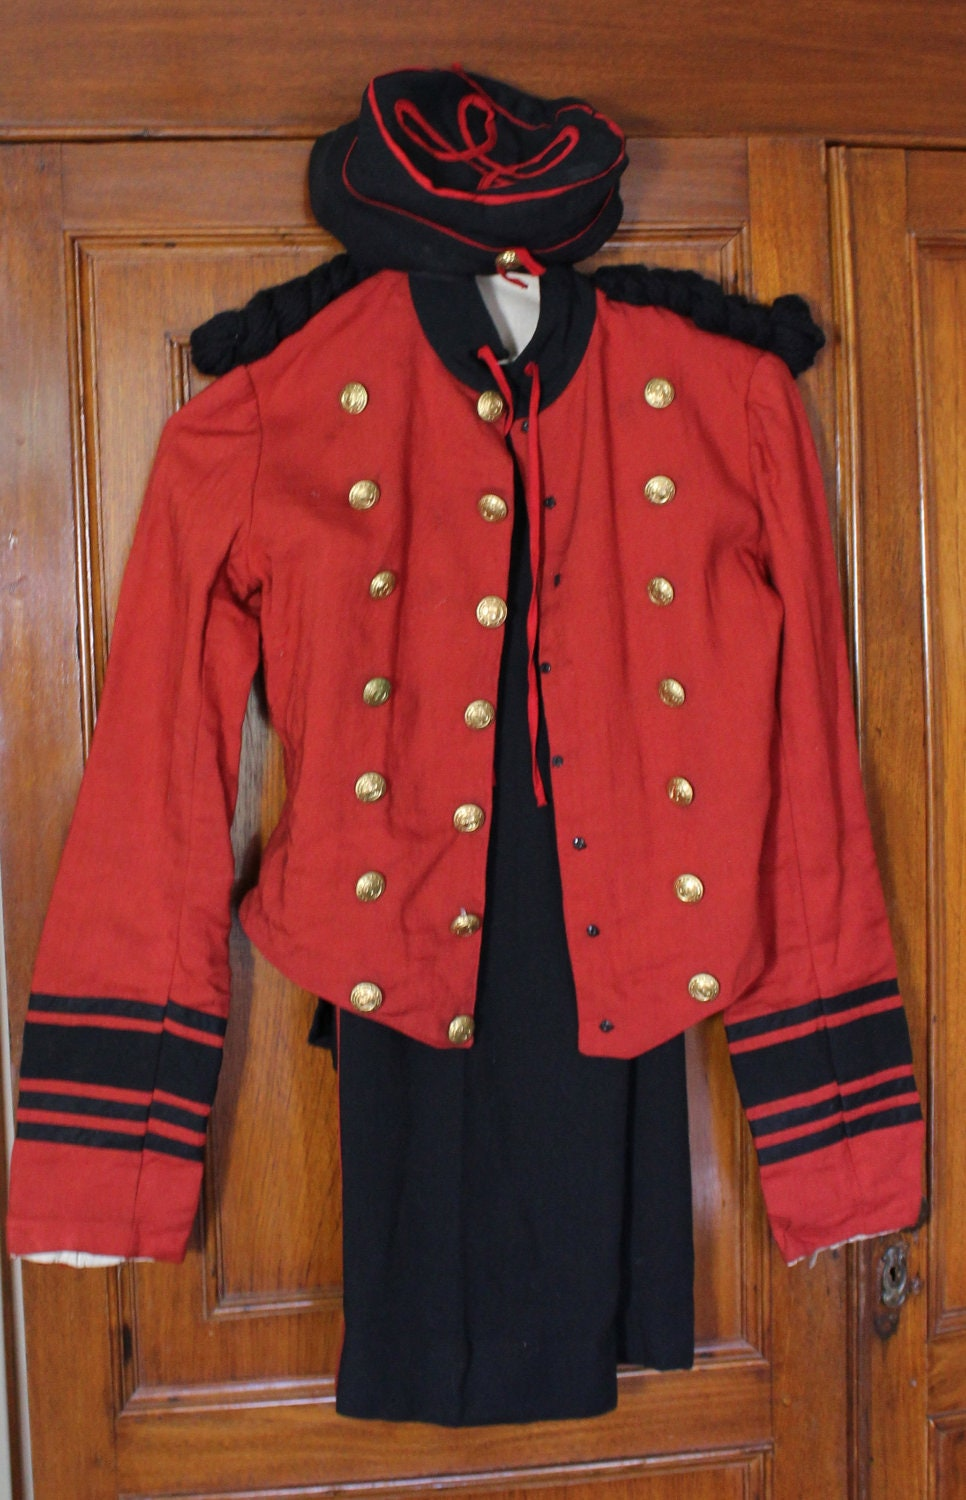 Vintage Bellhop Costume Rare Find 1920s Halloween By